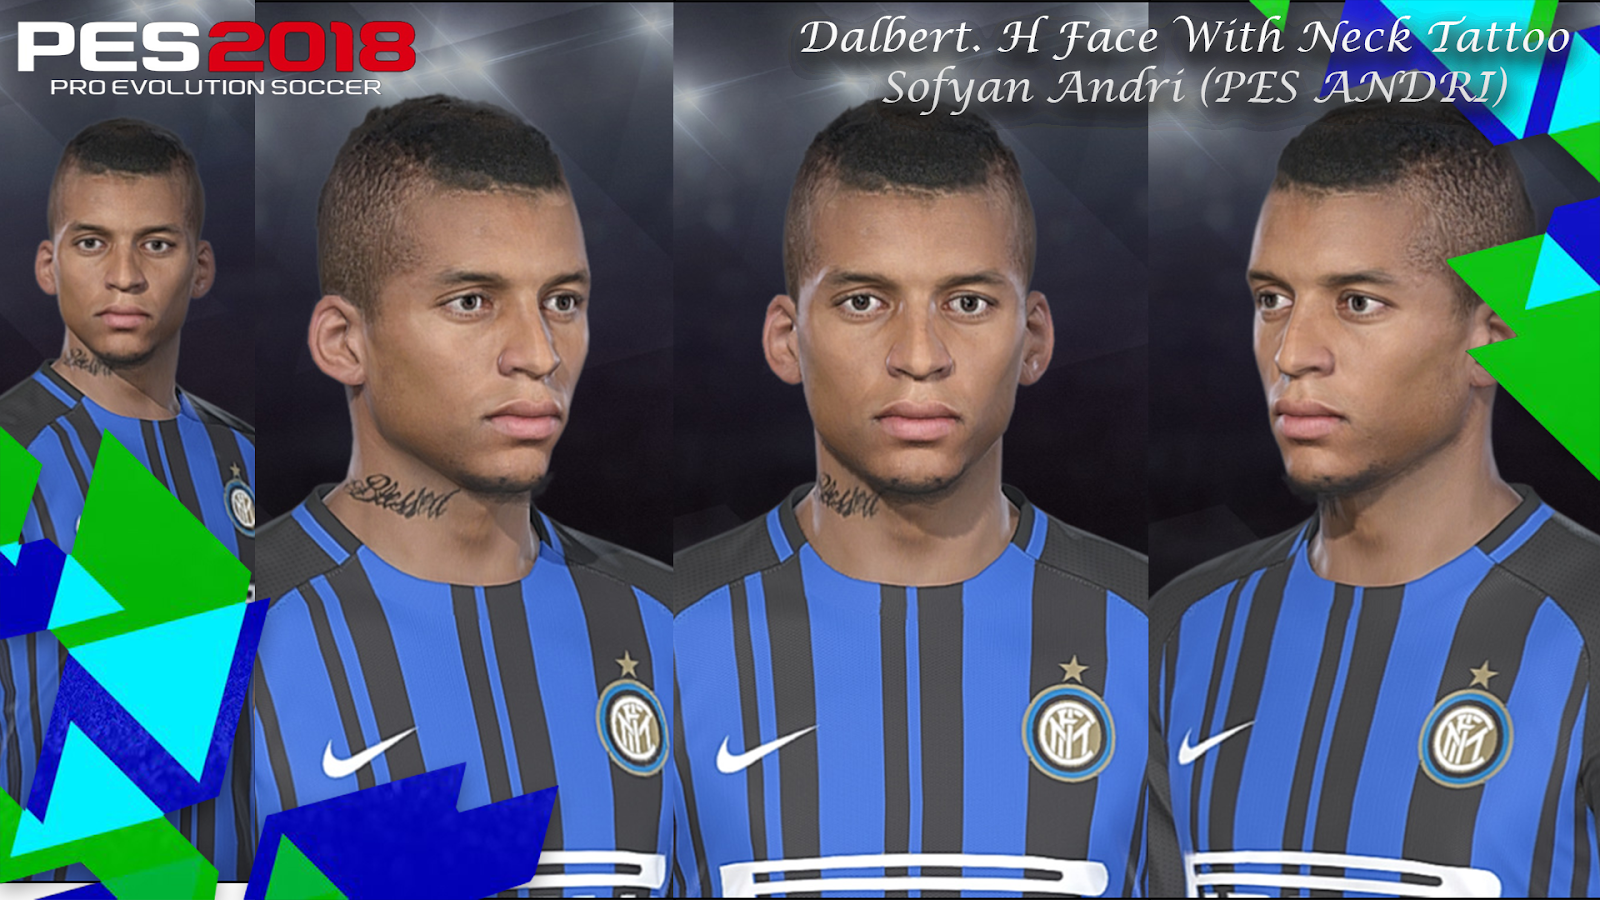 PES 2018 Dalbert. H Face With Neck Tattoo By Sofyan Andri